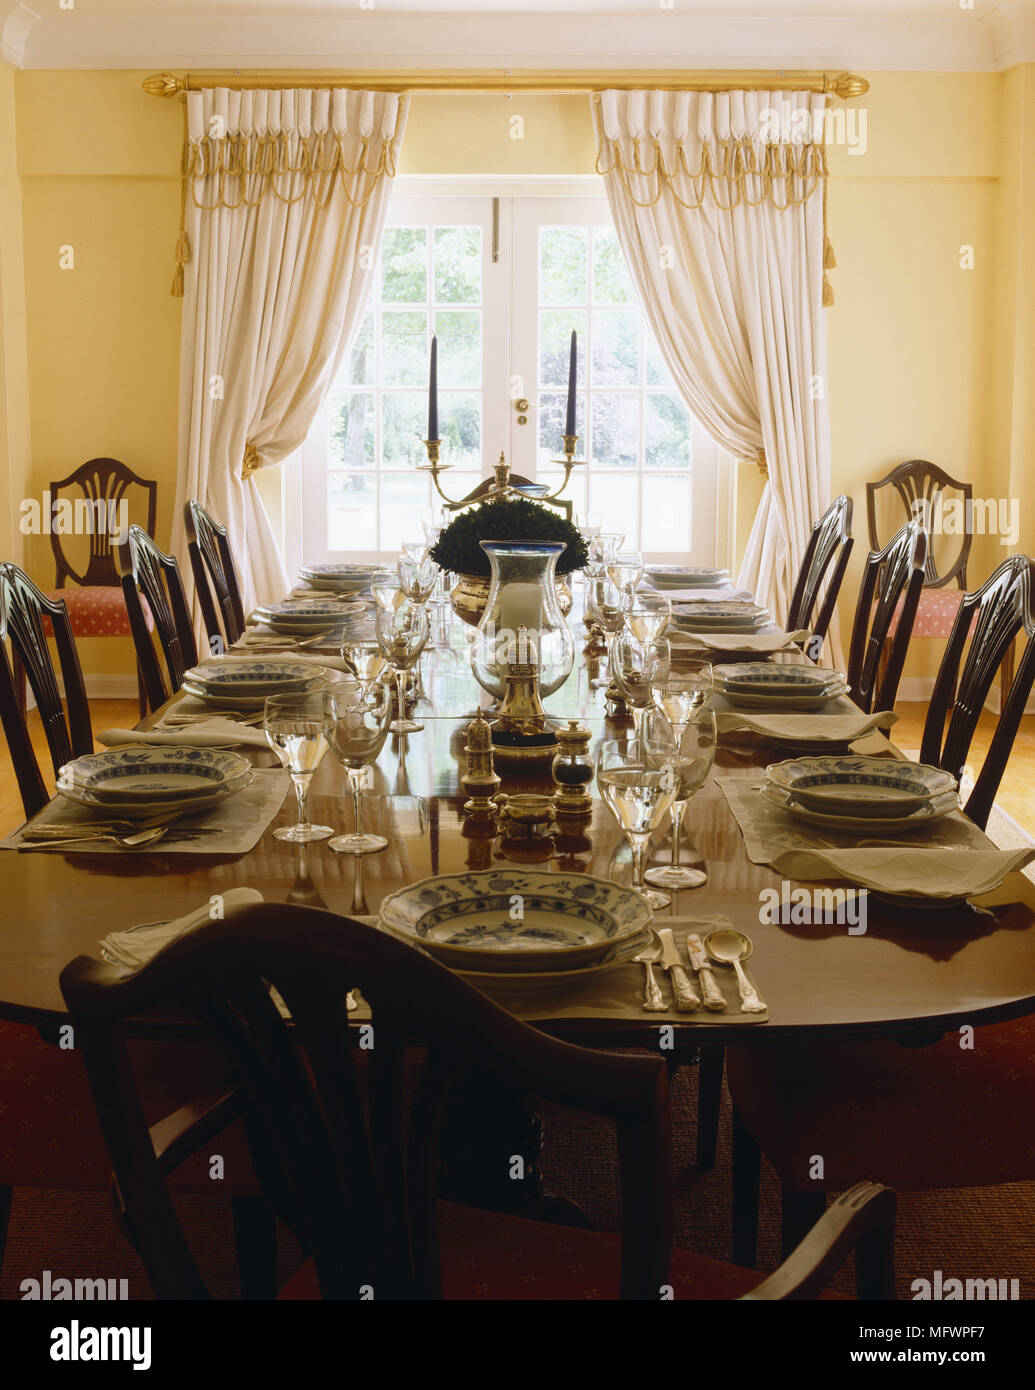 Table Set For Dinner Party In Formal Yellow Dining Room Stock Photo Alamy